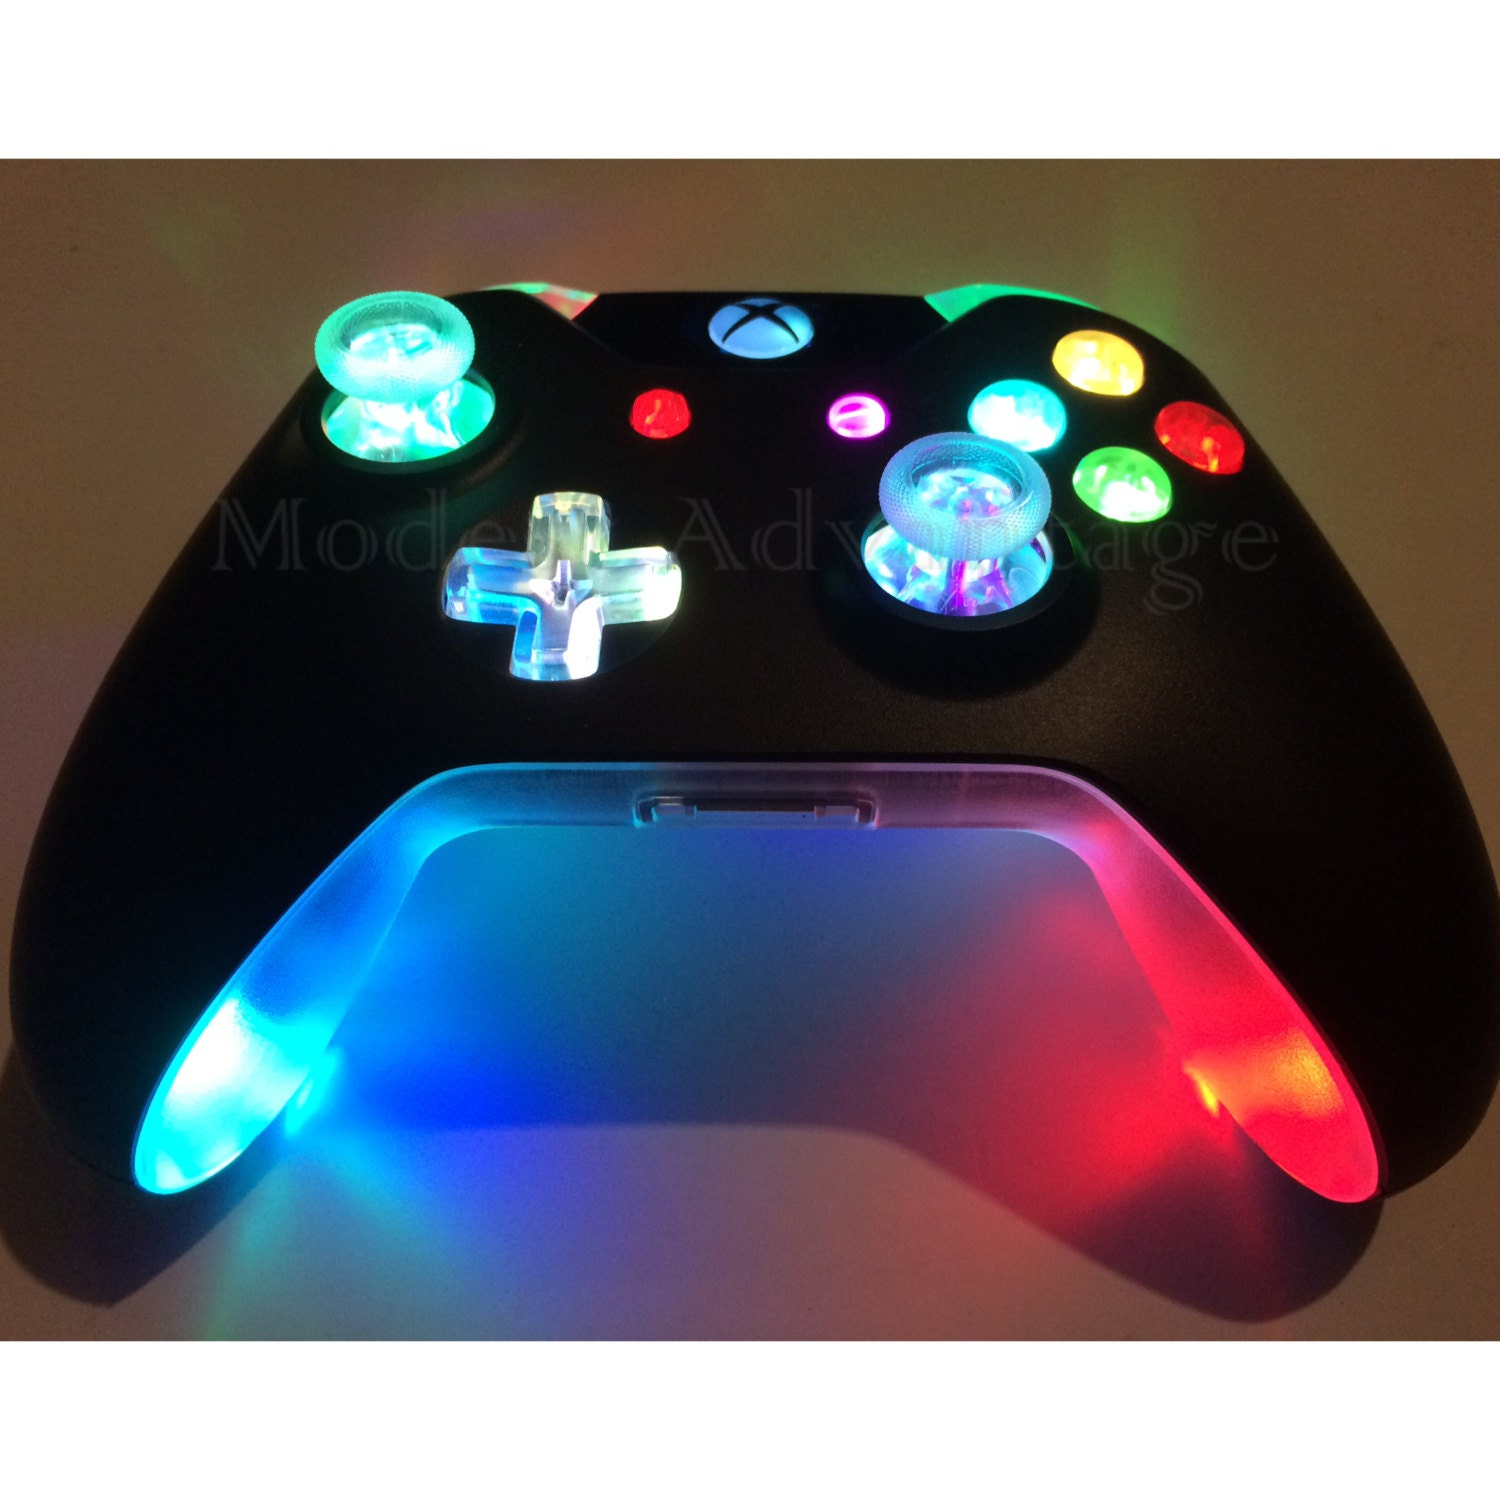 Foyer Colors Xbox One : Xbox one controller full color changing led mod